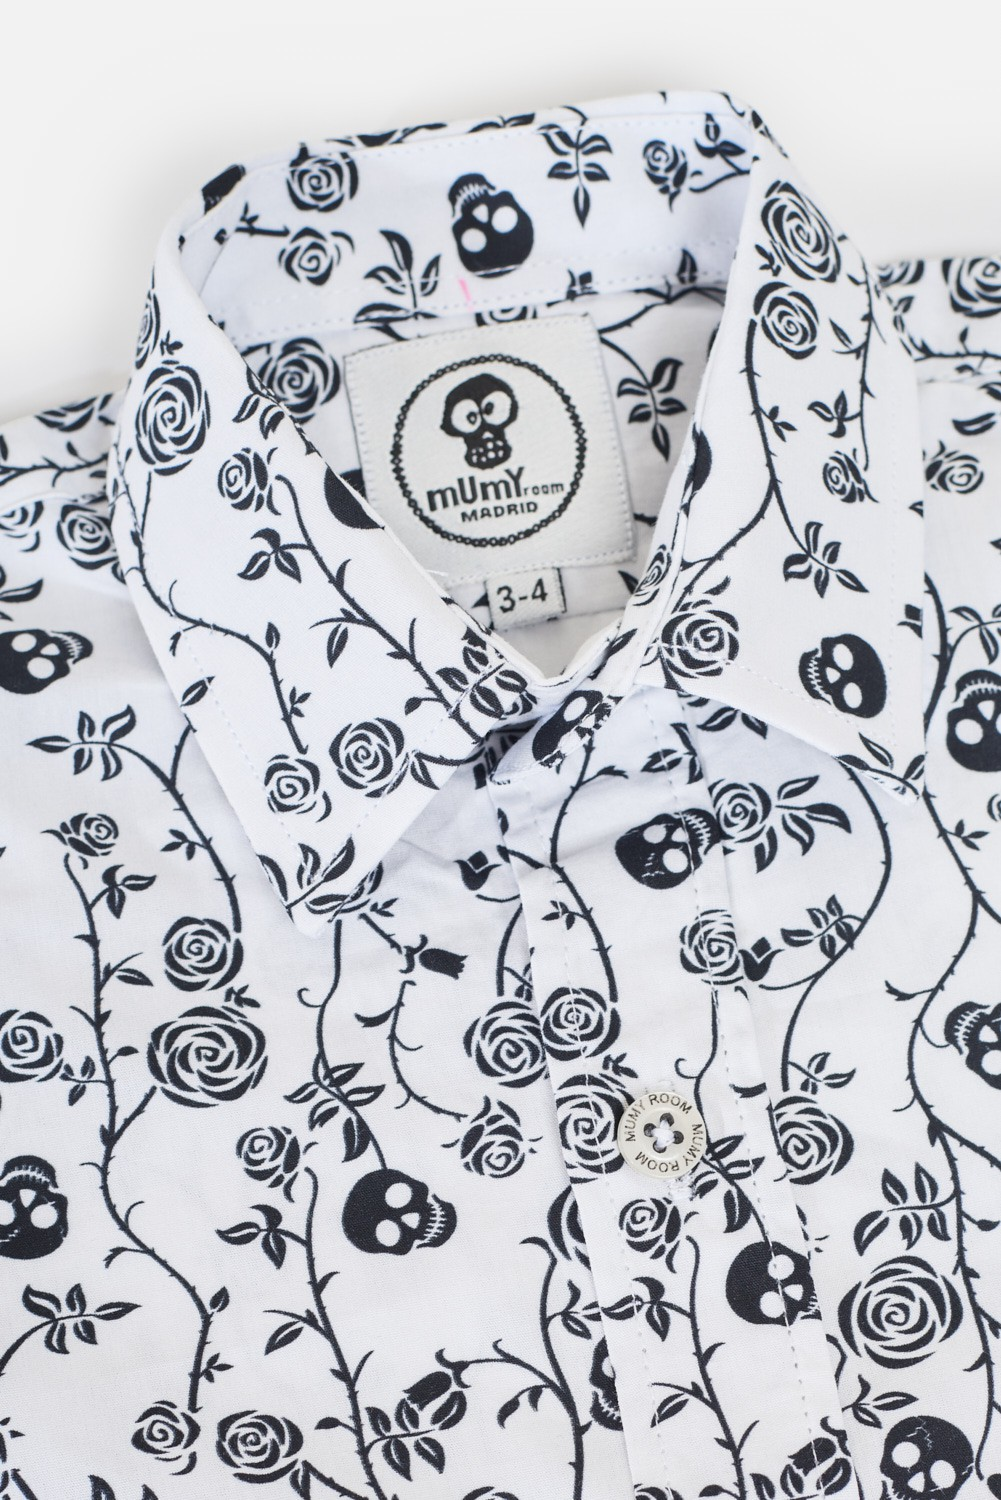 KID´S PRINTED SHIRT ROCKER LINE SKULLED BRANCHES